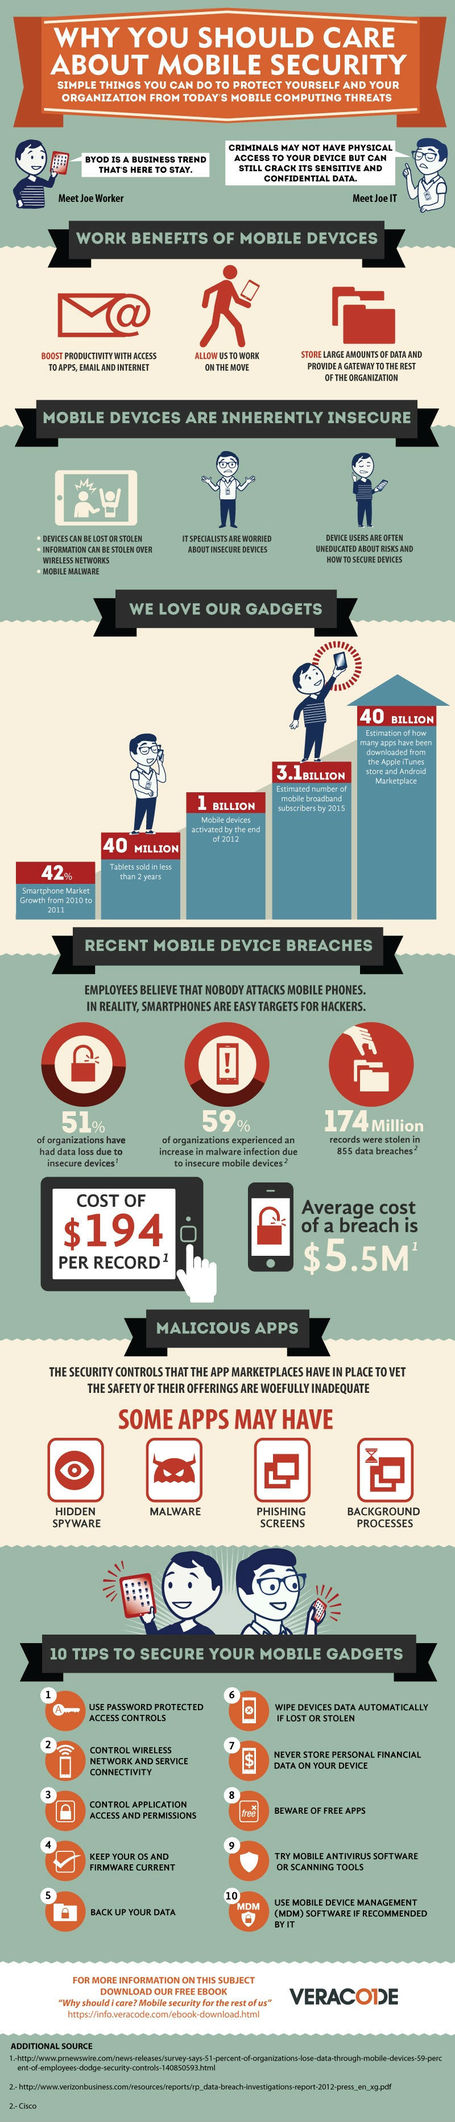 Why You Should Care About Mobile Security [INFOGRAPHIC] | Integrating Technology in the Classroom | Scoop.it